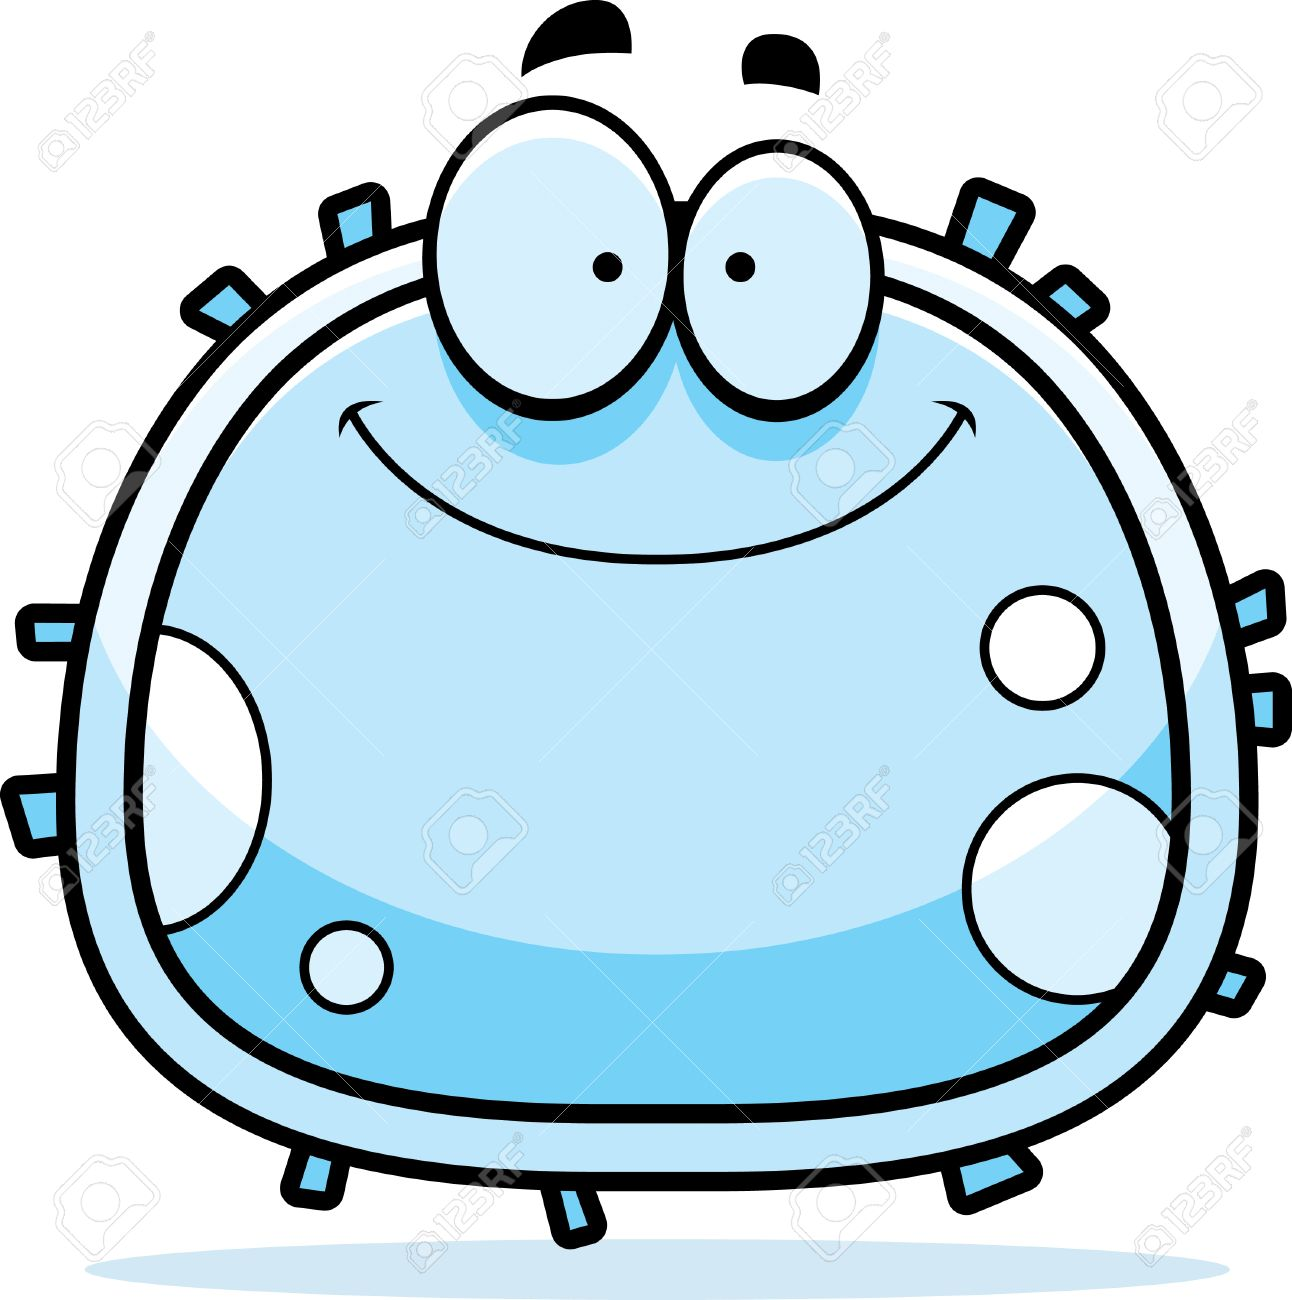 A Cartoon Illustration Of A White Blood Cell Smiling. Royalty Free ...